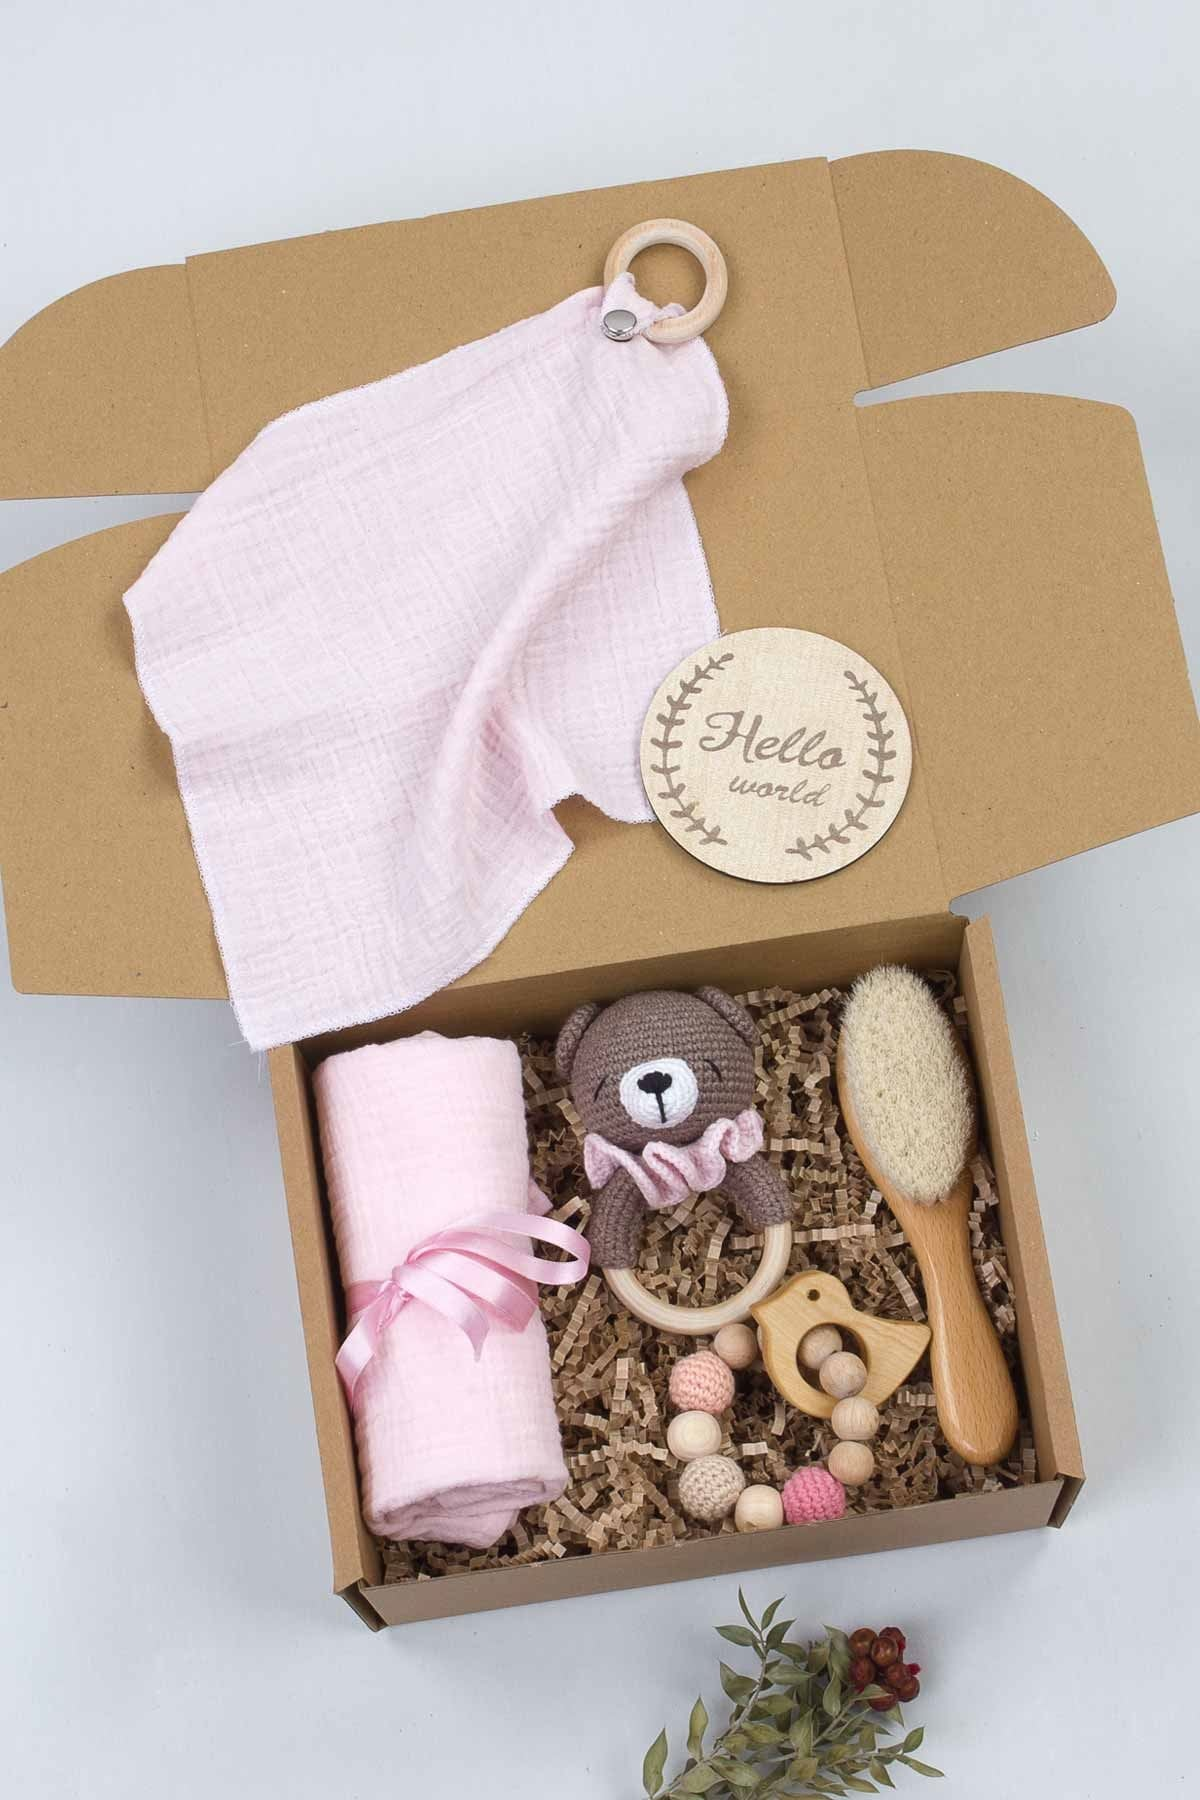 Baby New Born Gift Box Handmade Organic Rattle Teether Blanket Mouth Wipes Special Babies 6 Pcs Mother Birth Hospital Gift sets